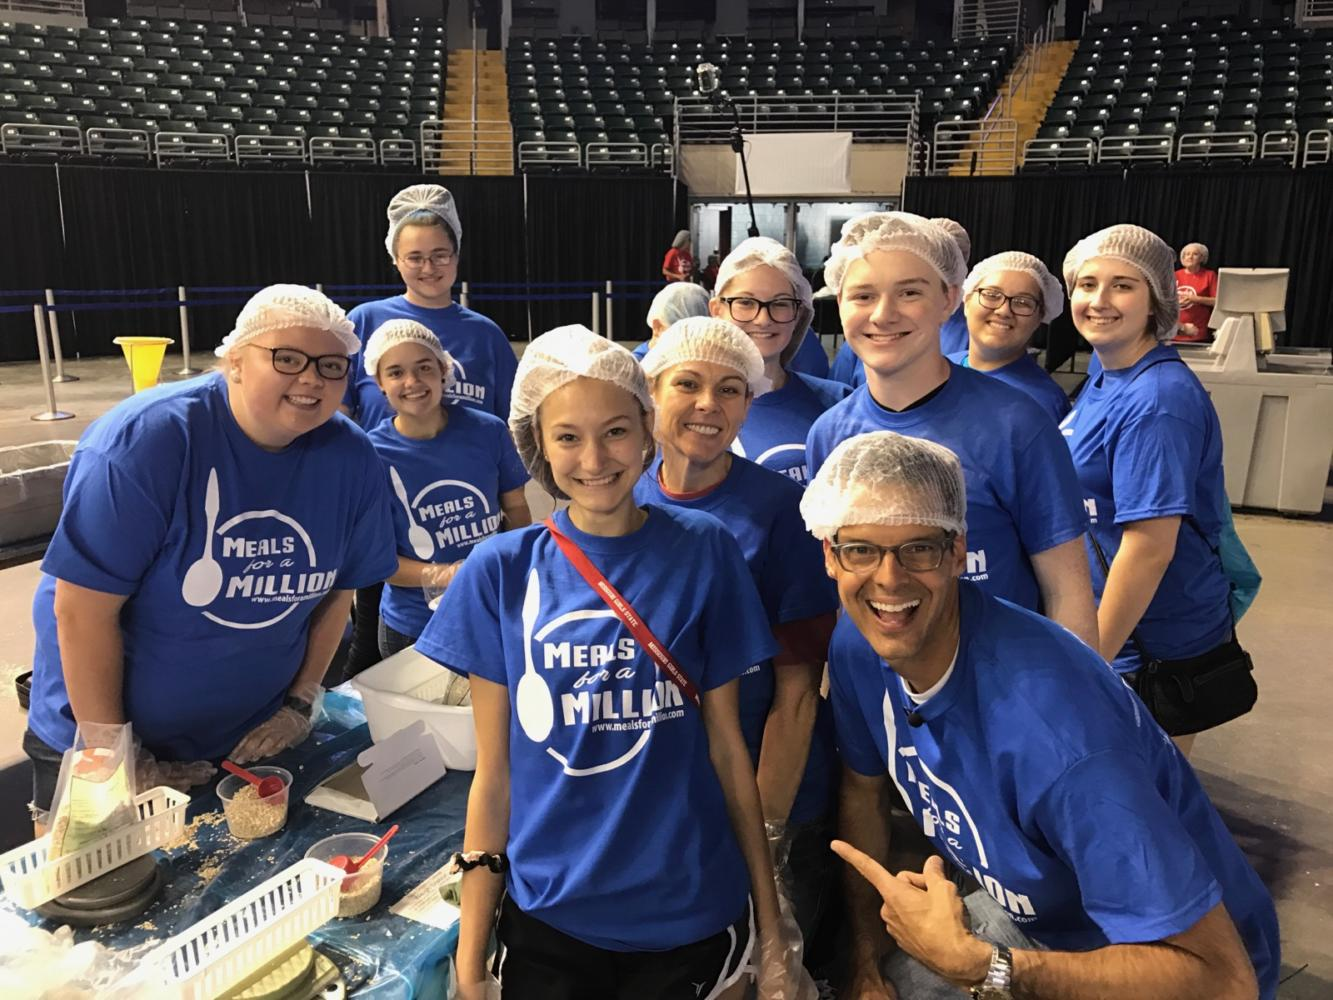 Key Club at Meals for a Million where Tim Ezell from Fox 2 News filmed Key Club hard at work.  Key Club will be on Fox 2 News' The Thread on Saturday, Sept. 16 at 8:30 a.m.